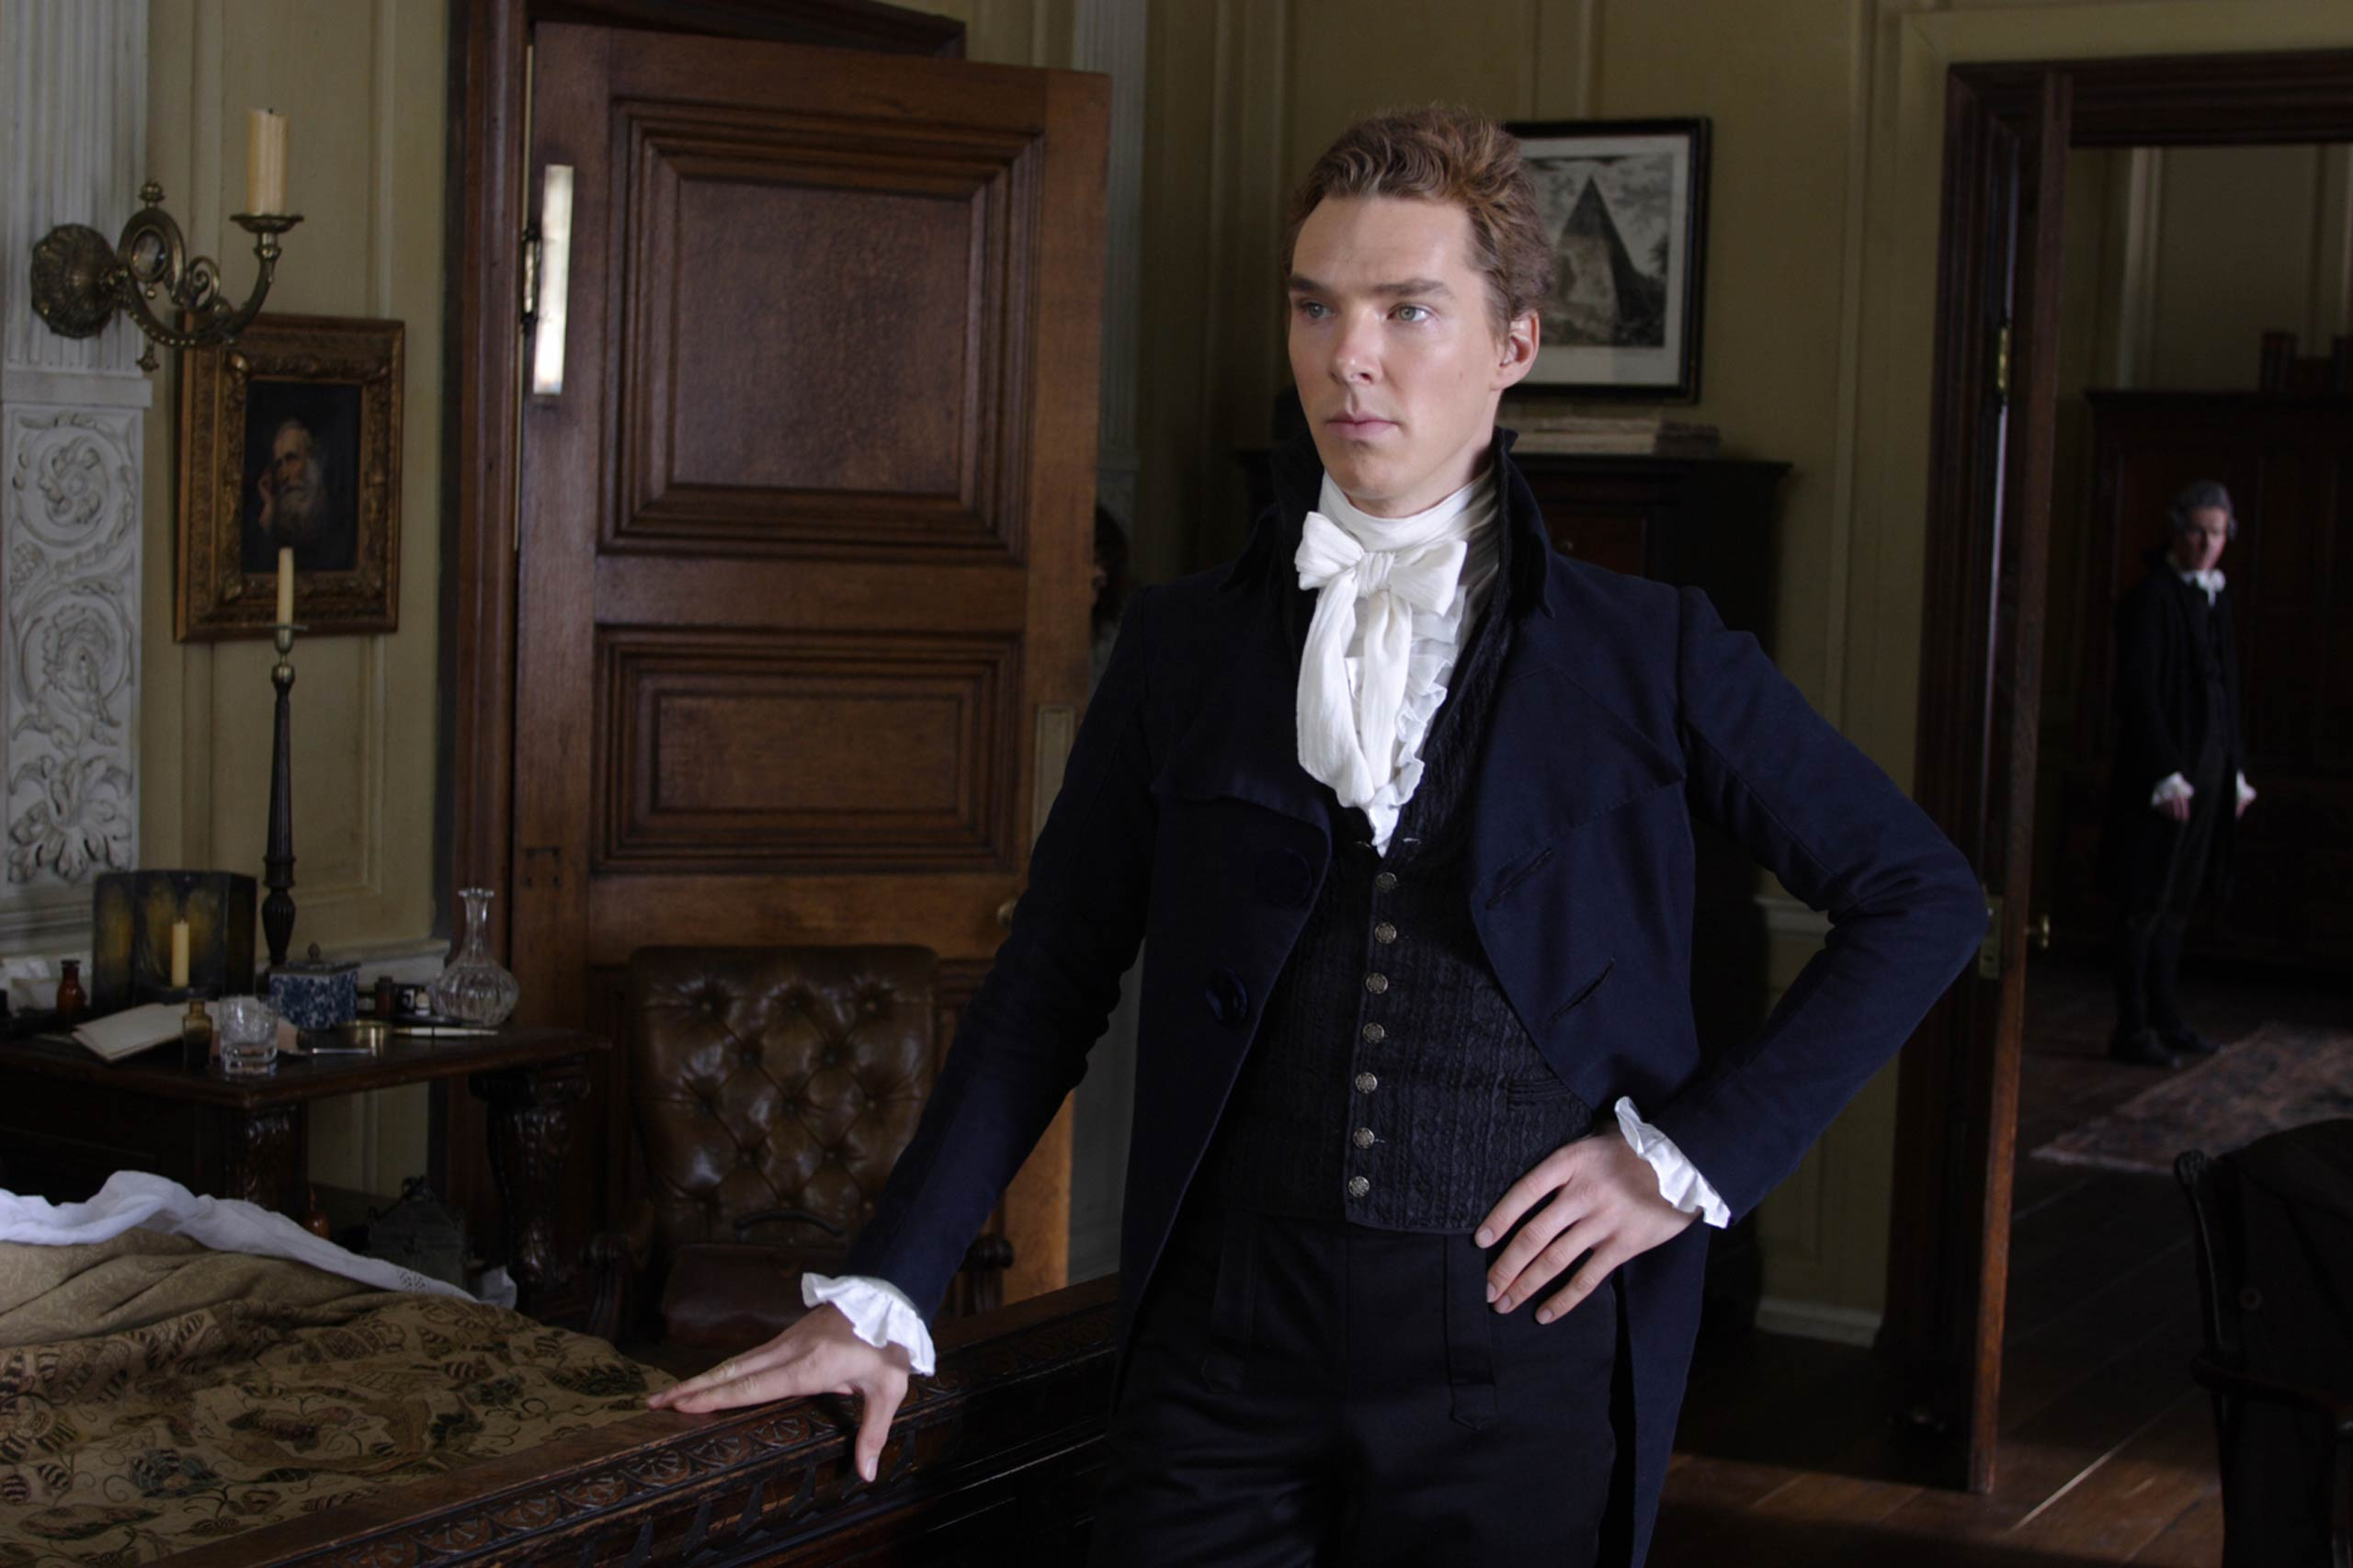 <strong>Amazing Grace</strong> Cumberbatch played William Pitt the Younger, the youngest ever Prime Minister of the United Kingdom, in this 2006 drama about banning the slave trade in the British Empire.